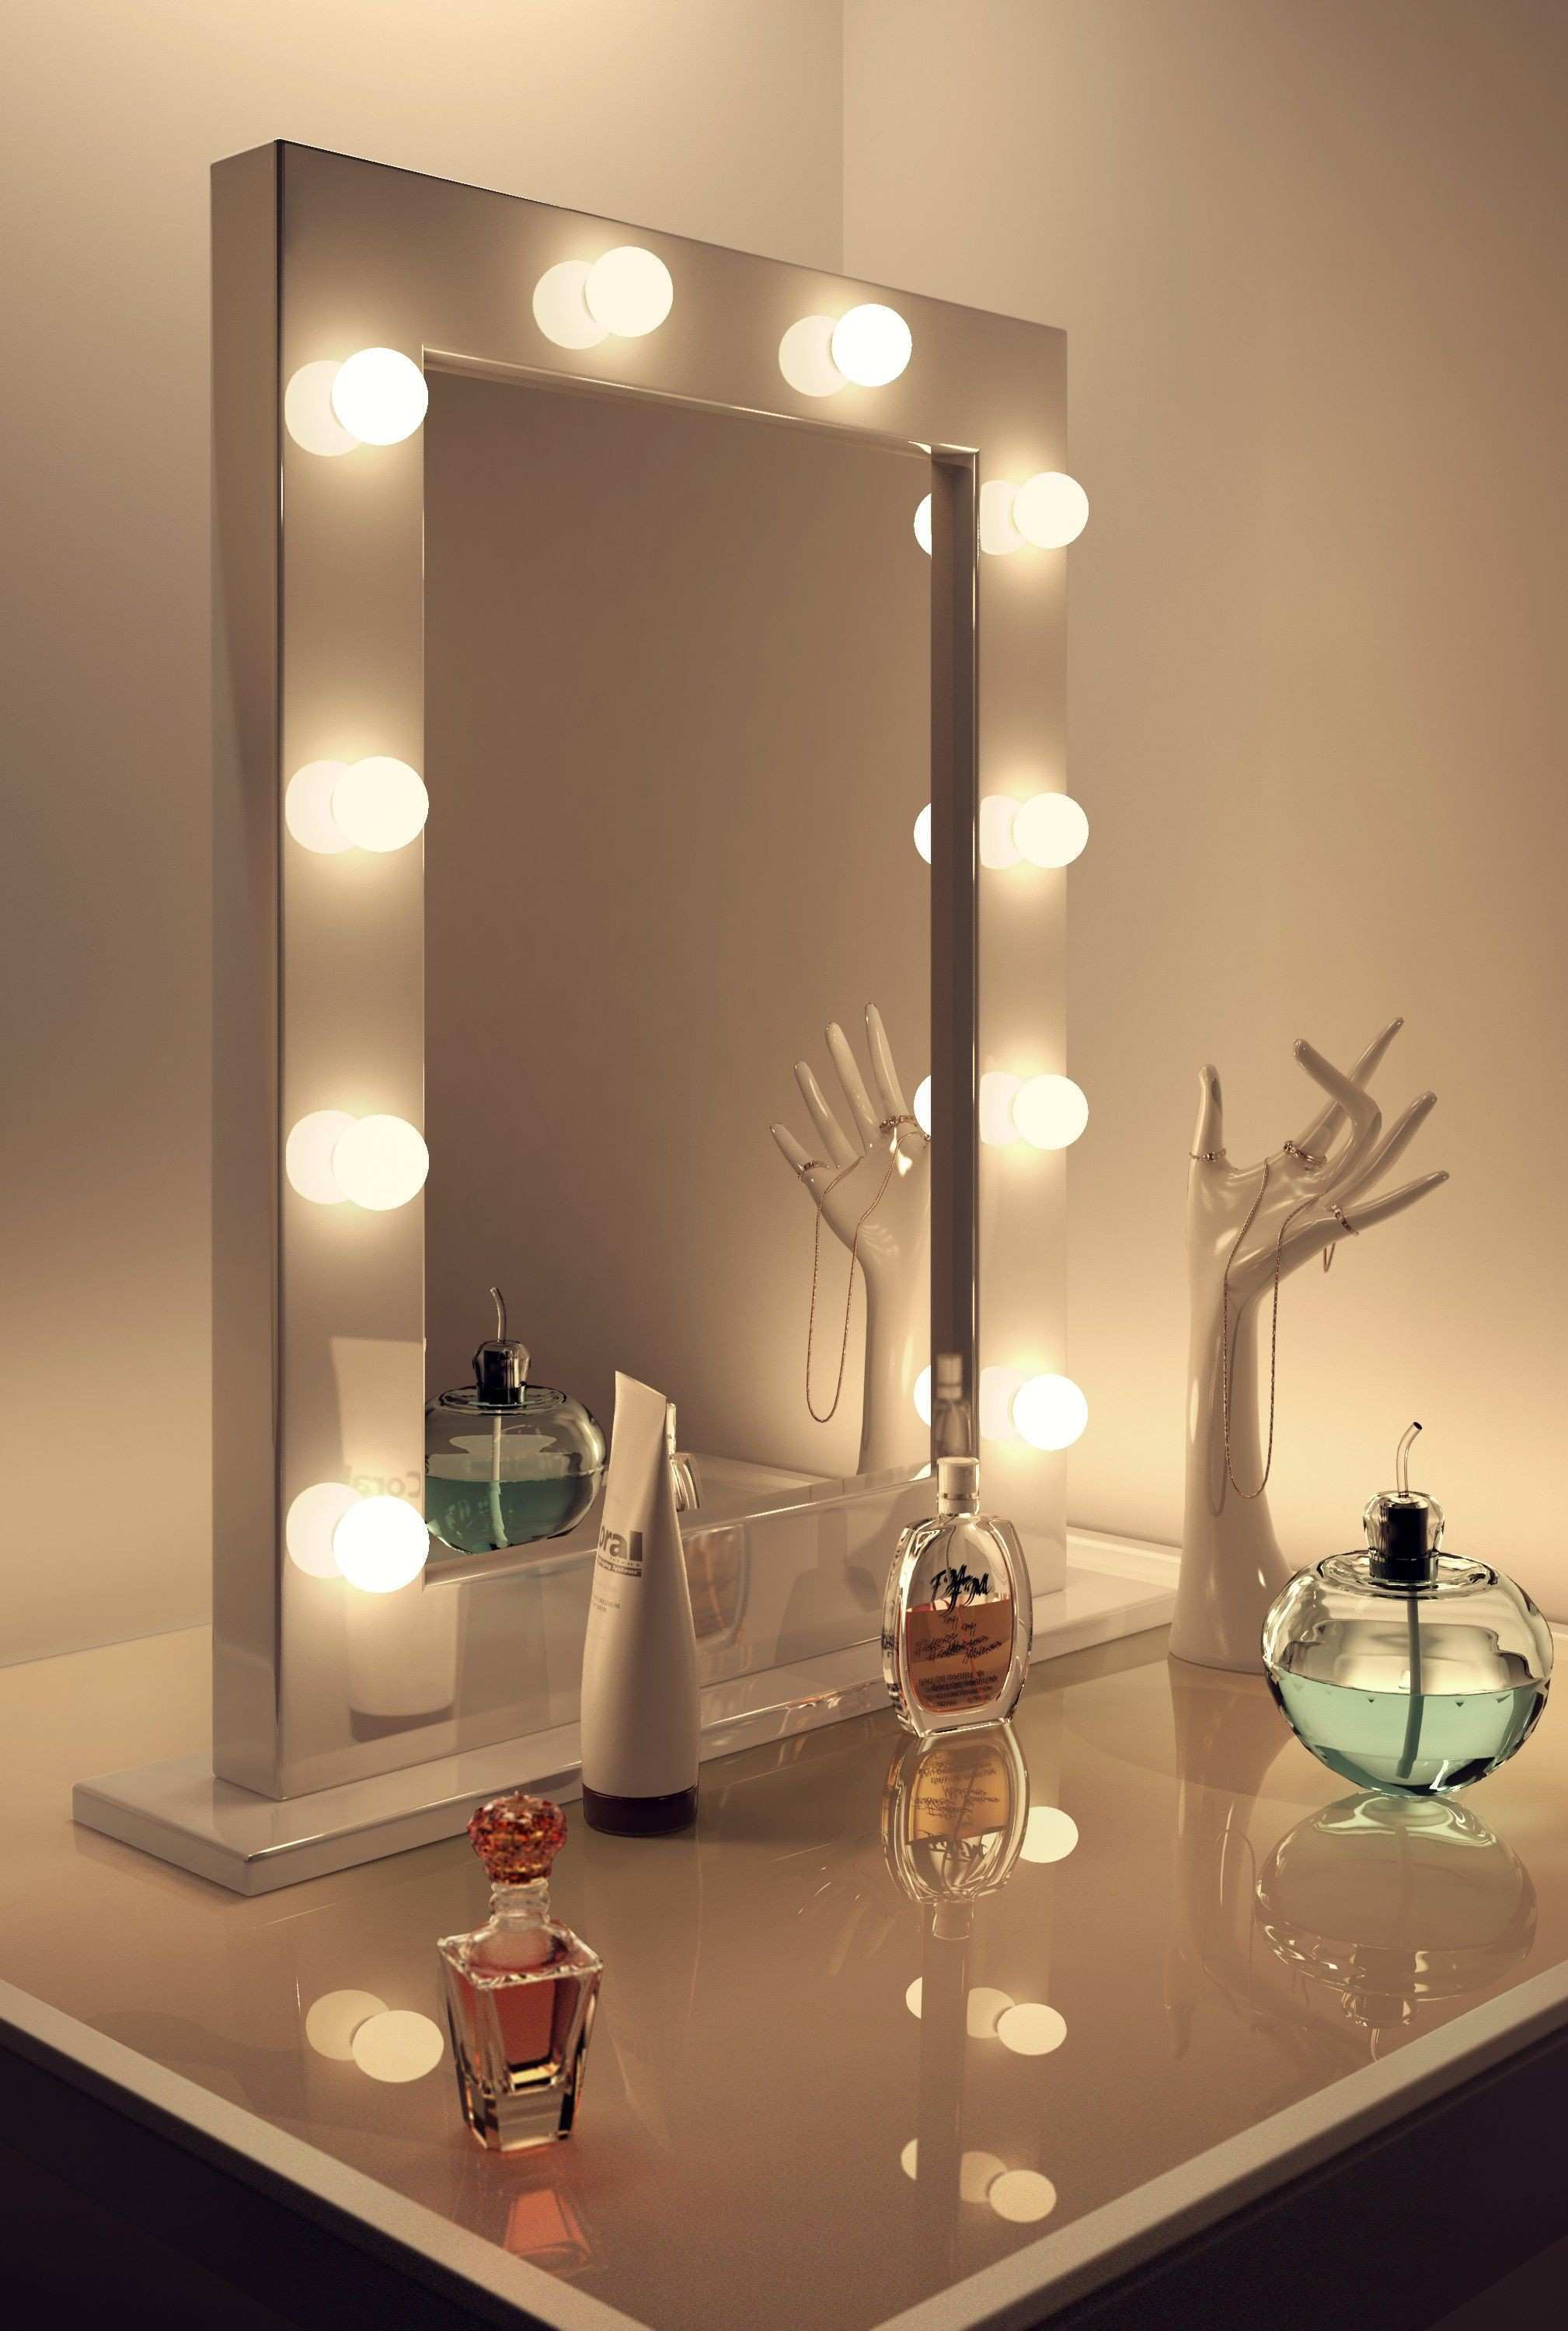 100 Lovely Desk Mirror with Lights